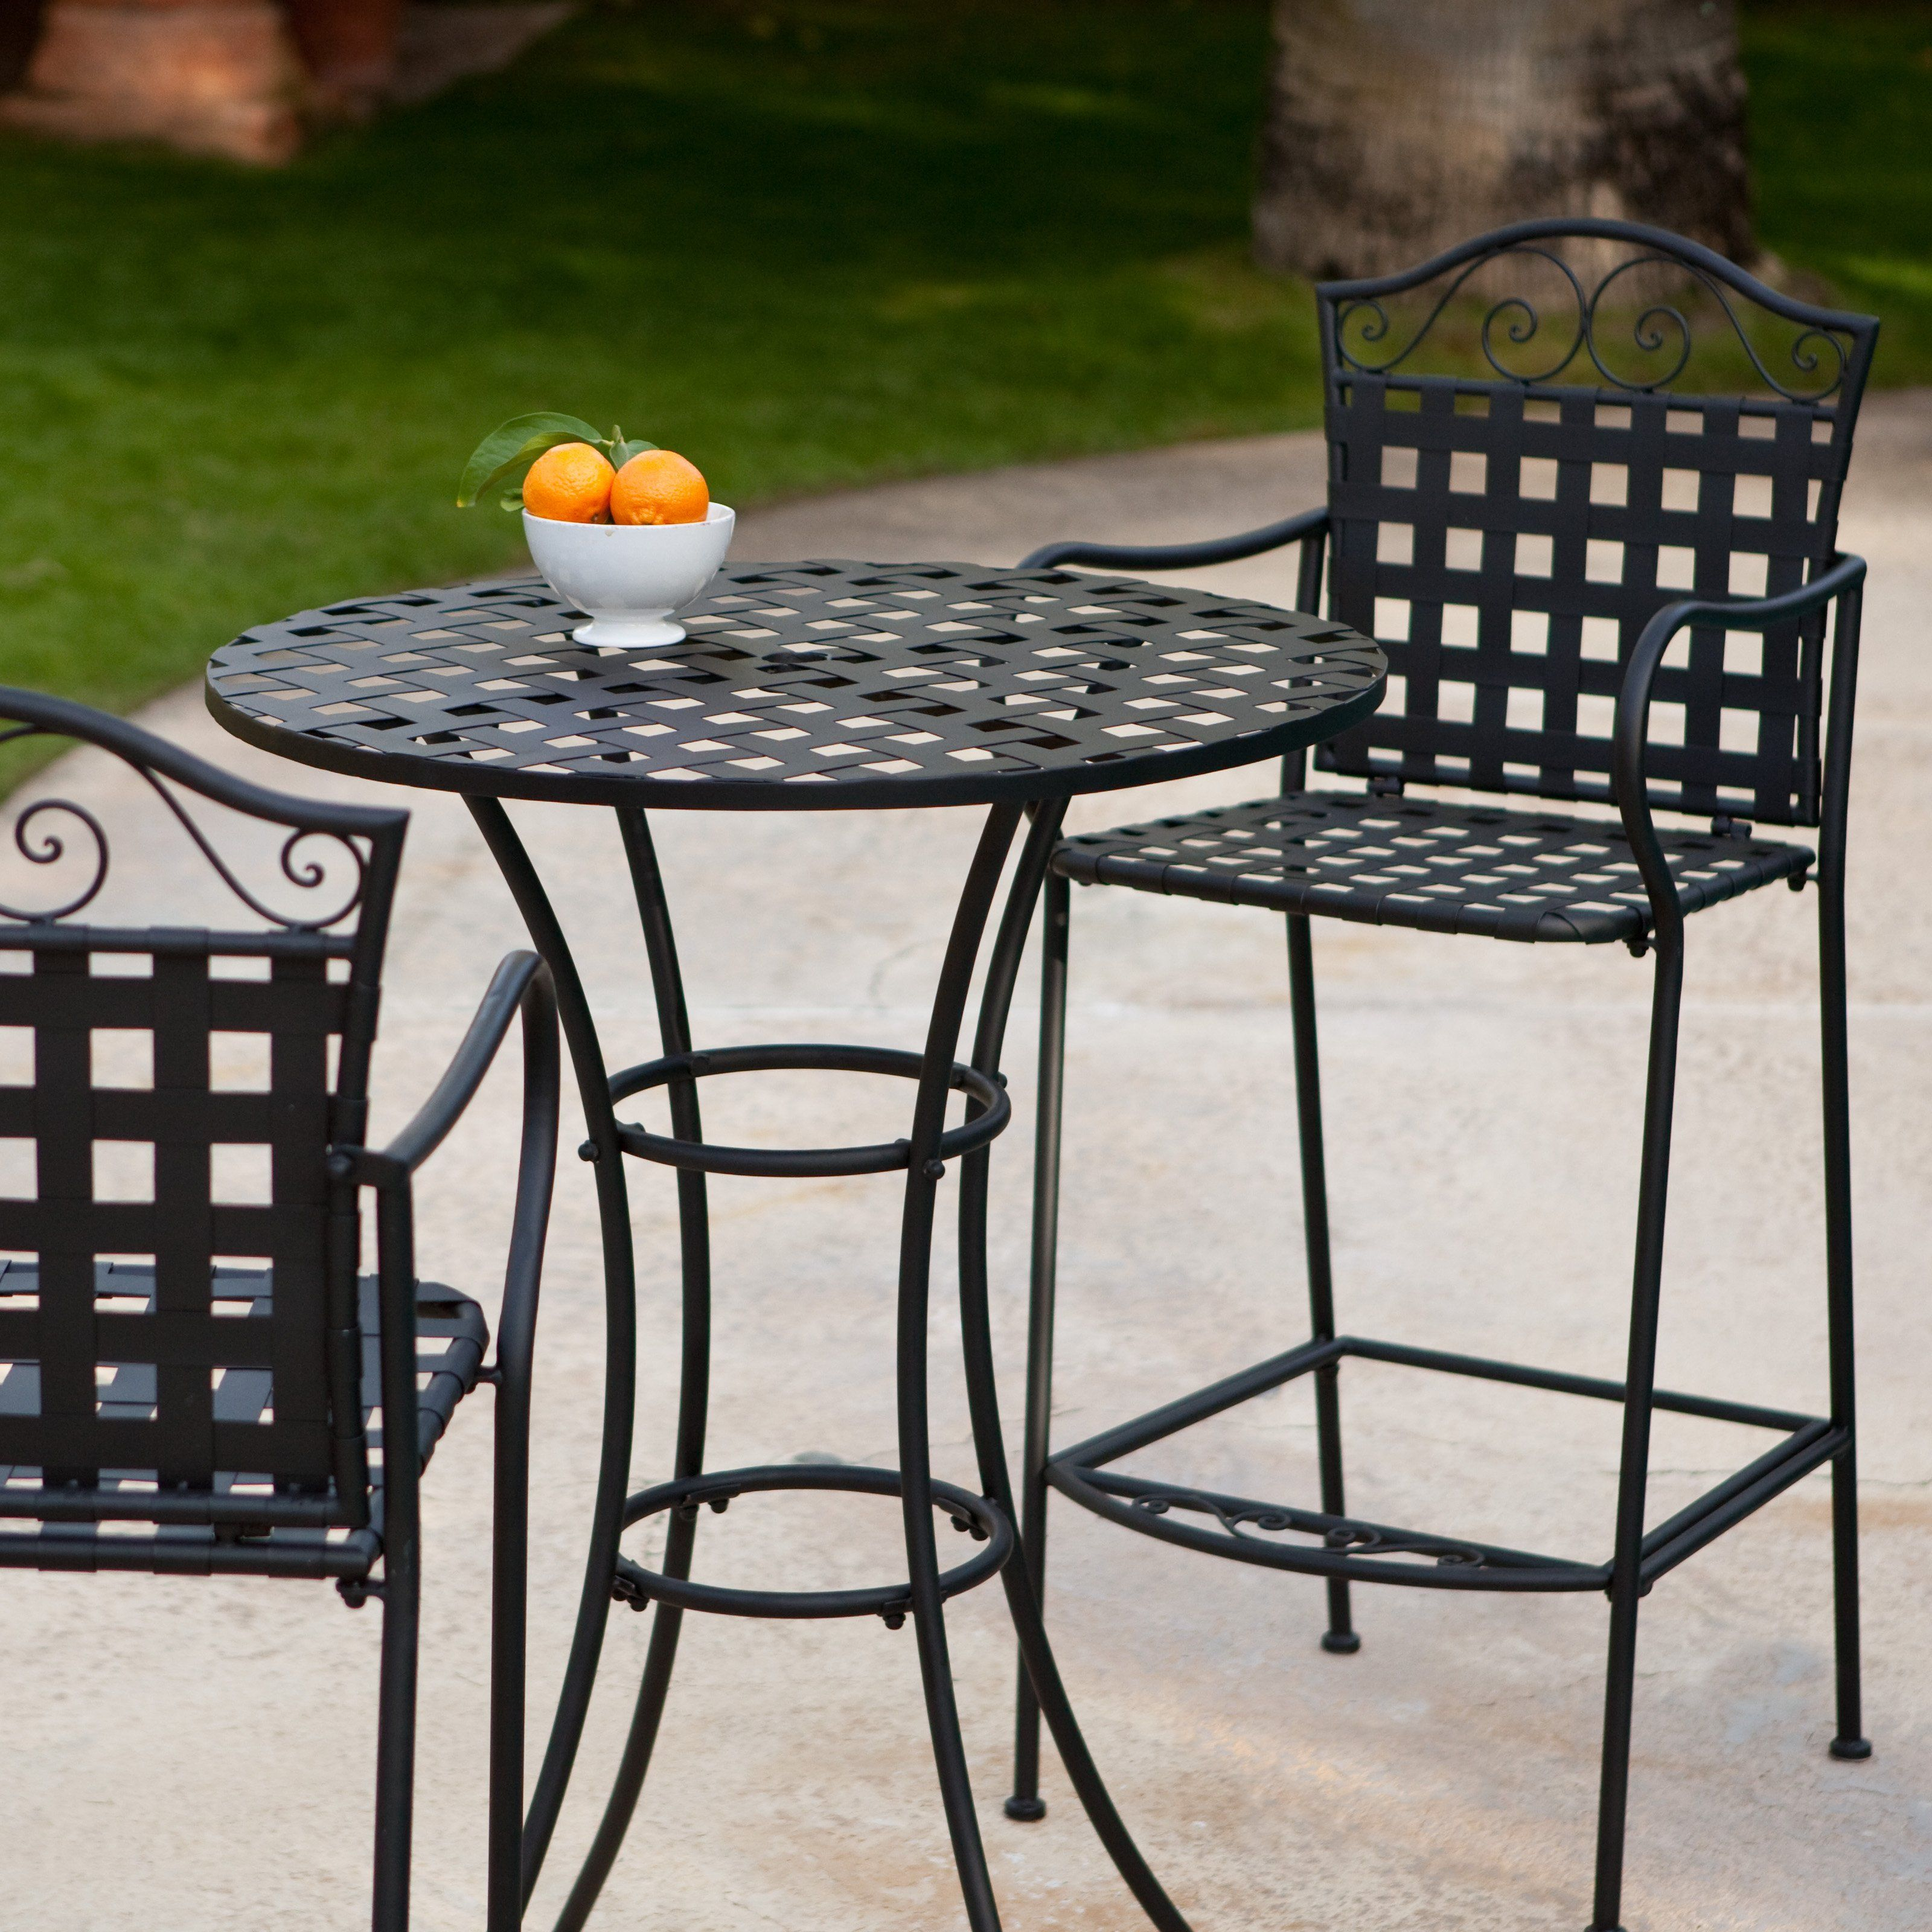 On My Deck Right Now Looks Great Indoors Too Capri Woven Wrought Iron Bar Height Bistro Set 249 99